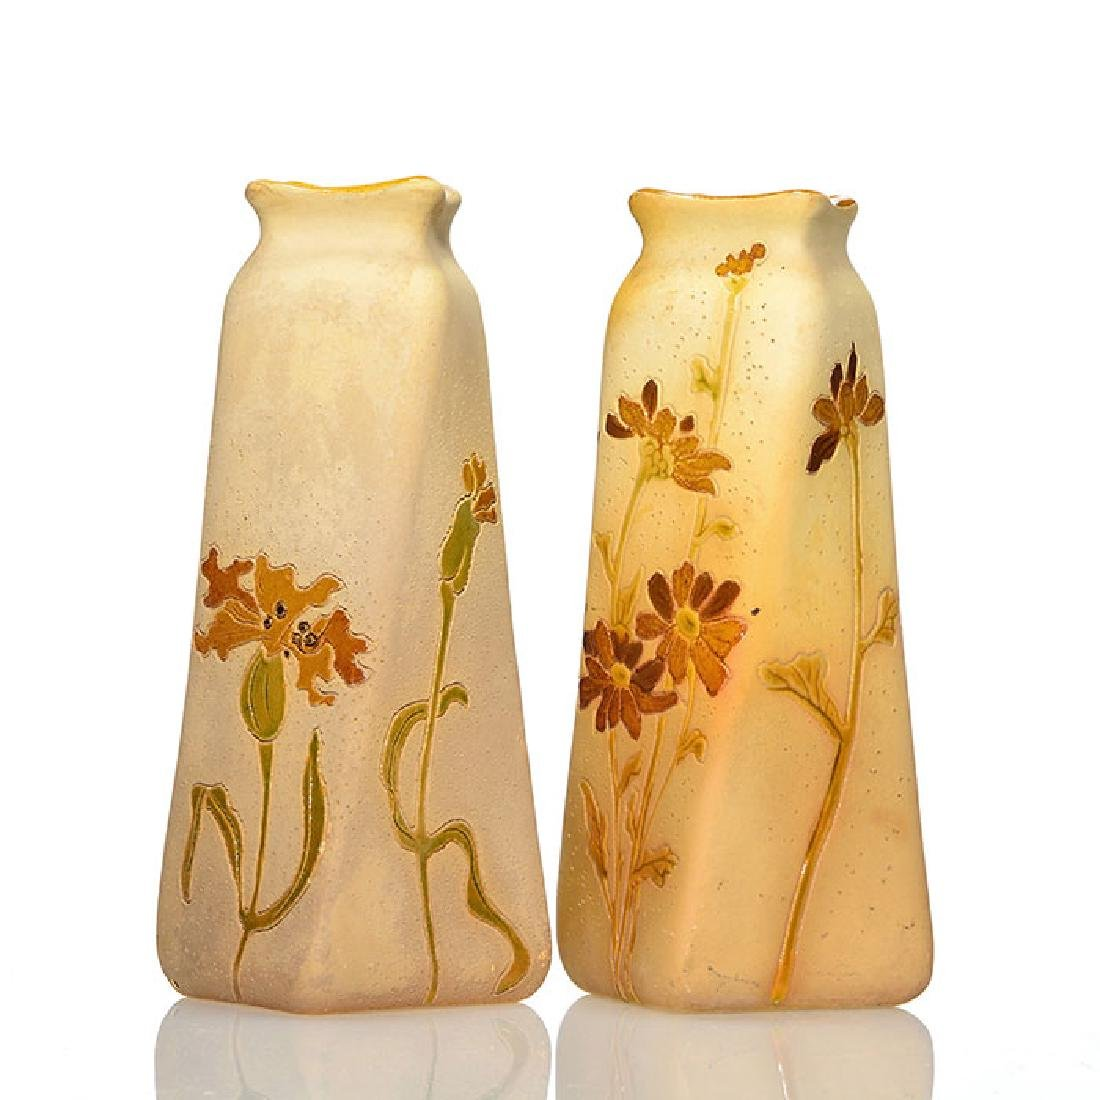 2 Roseville Rozane Woodland vases, 6 1/2 inches, seal